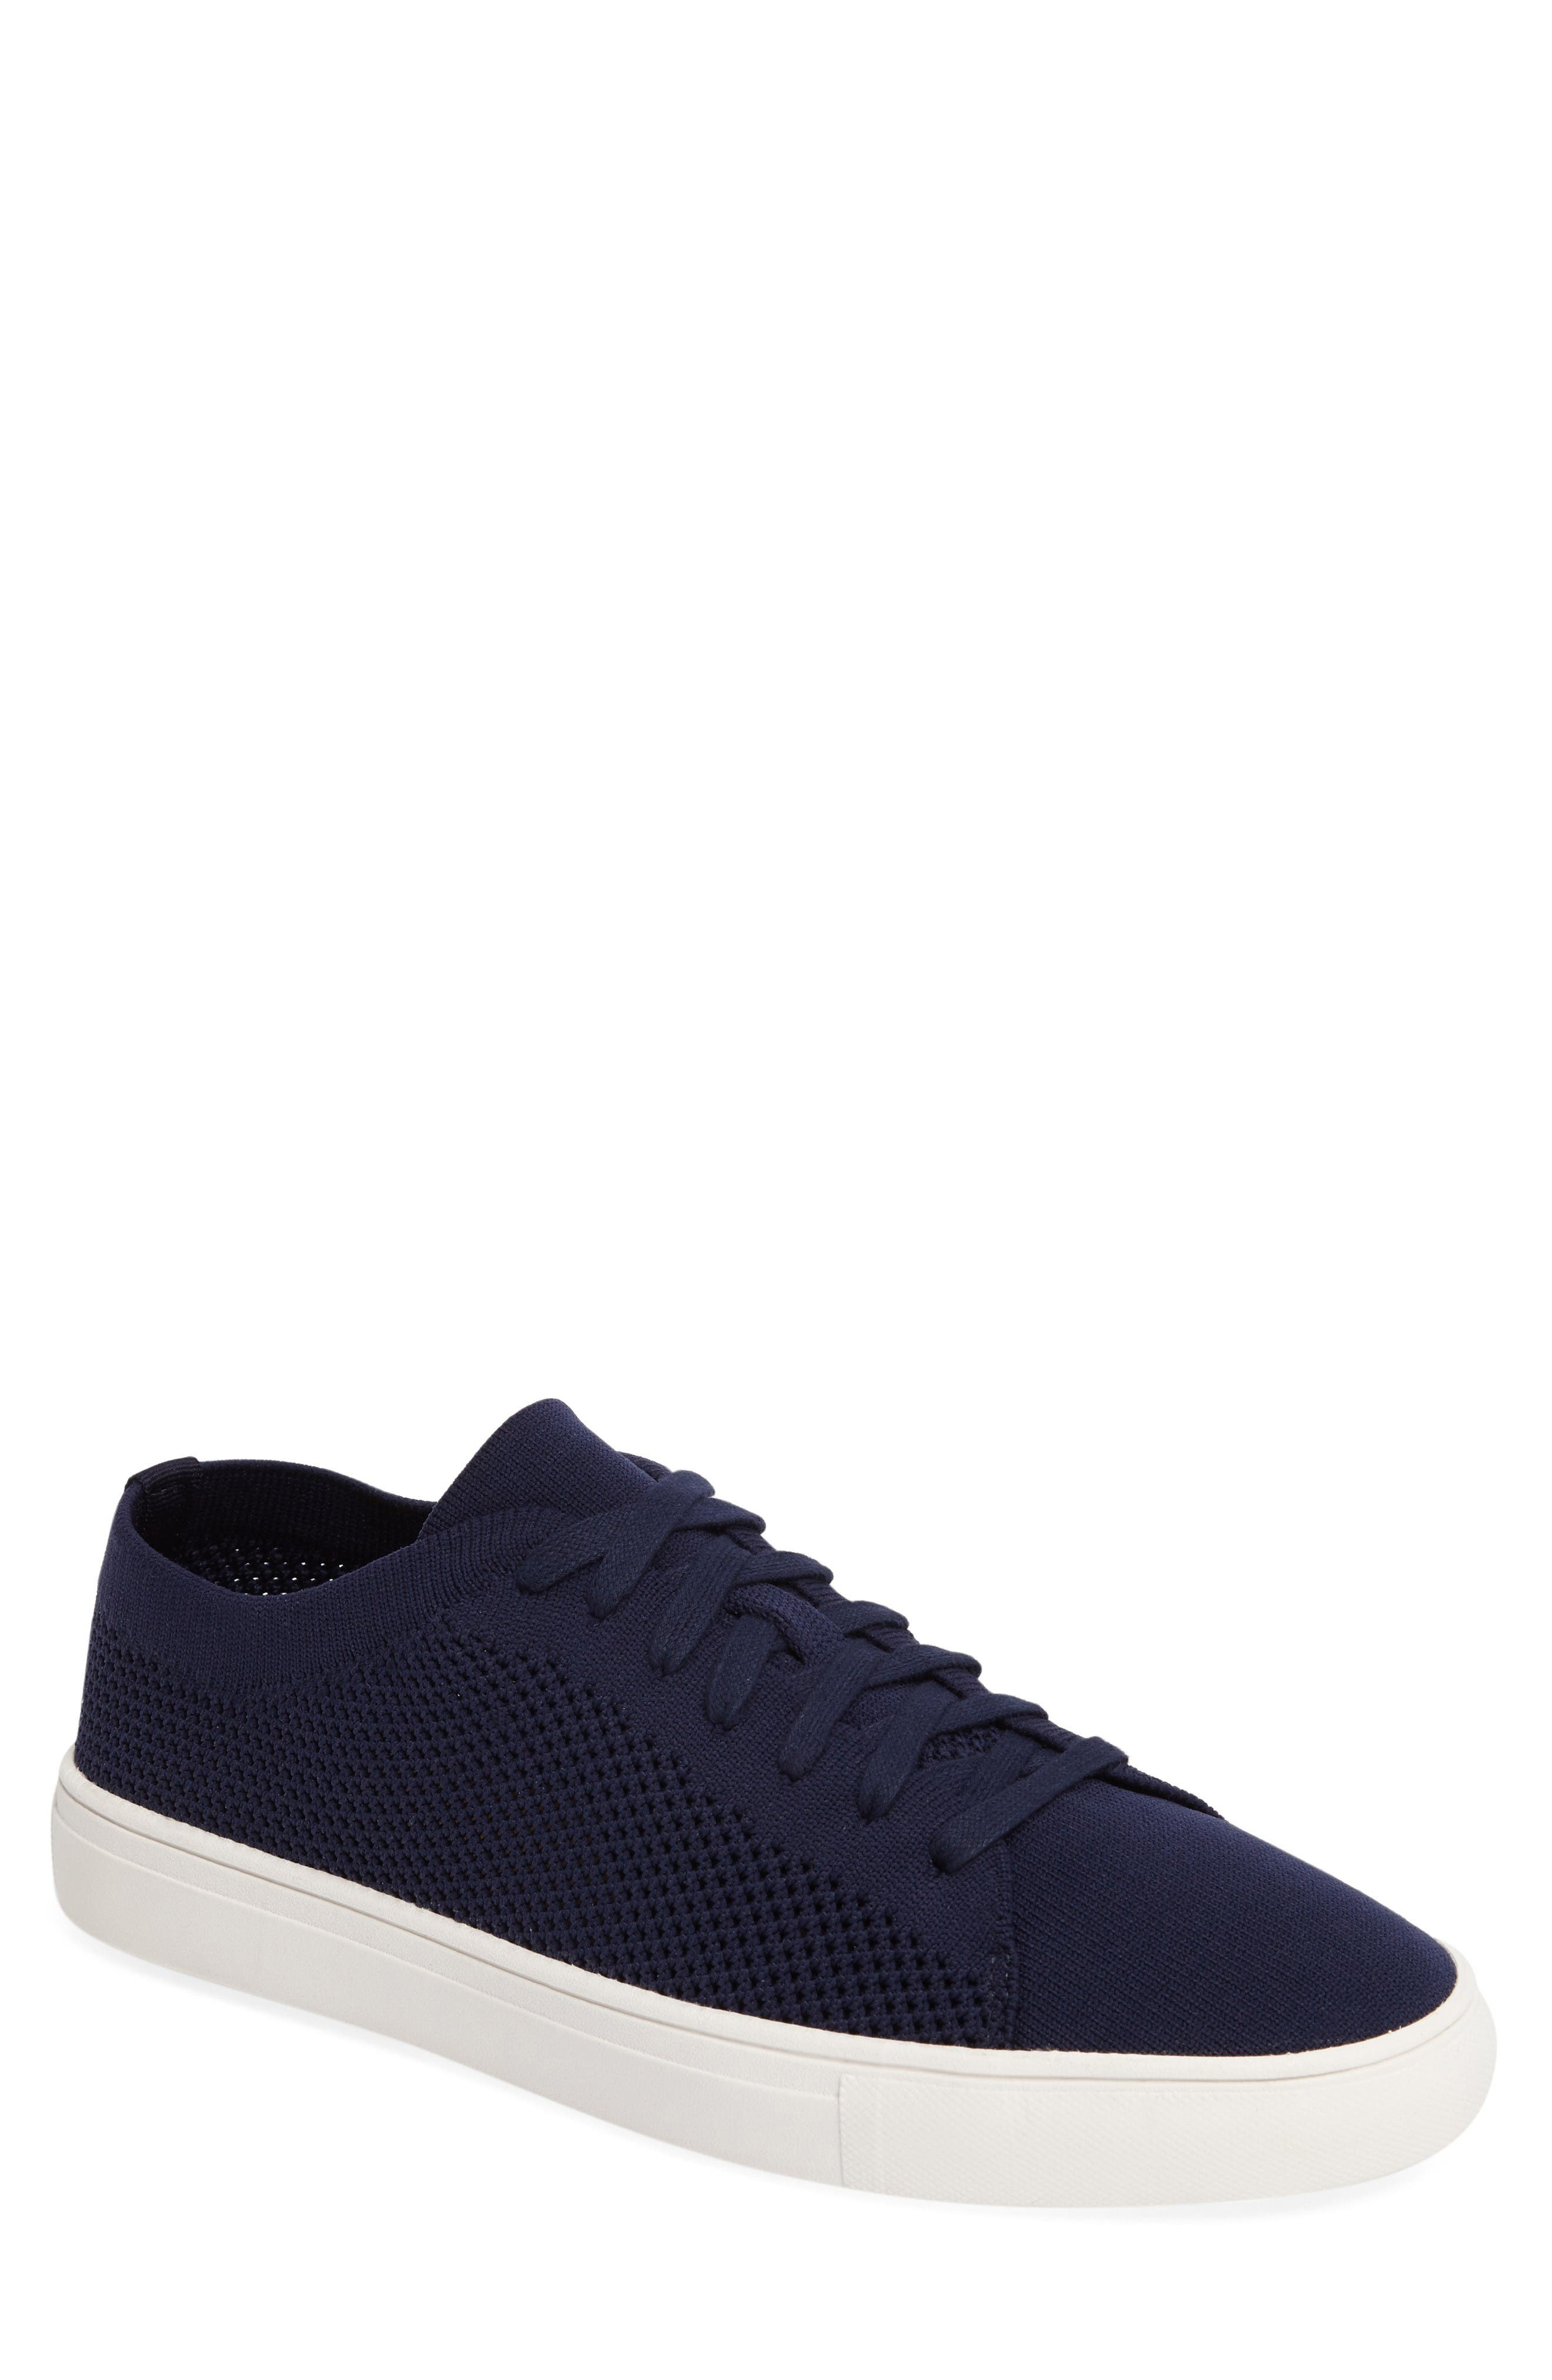 On the Road Woven Sneaker,                         Main,                         color, Navy